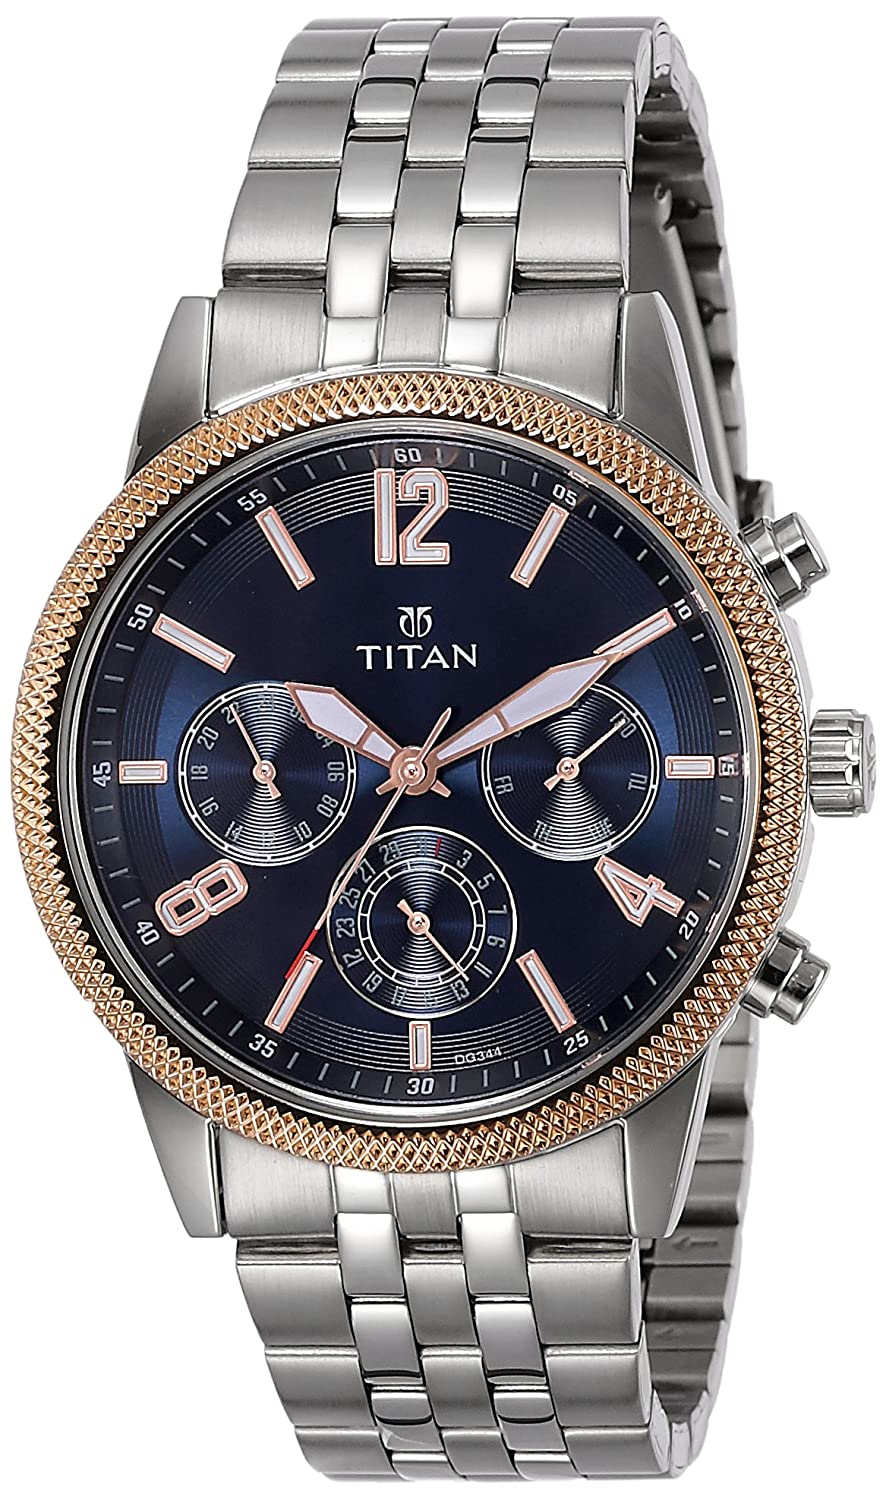 Titan Neo Analog Blue Dial Best Mens Watches Under 5000 in India to buy in 2019 - Reviews & Buyers Guide